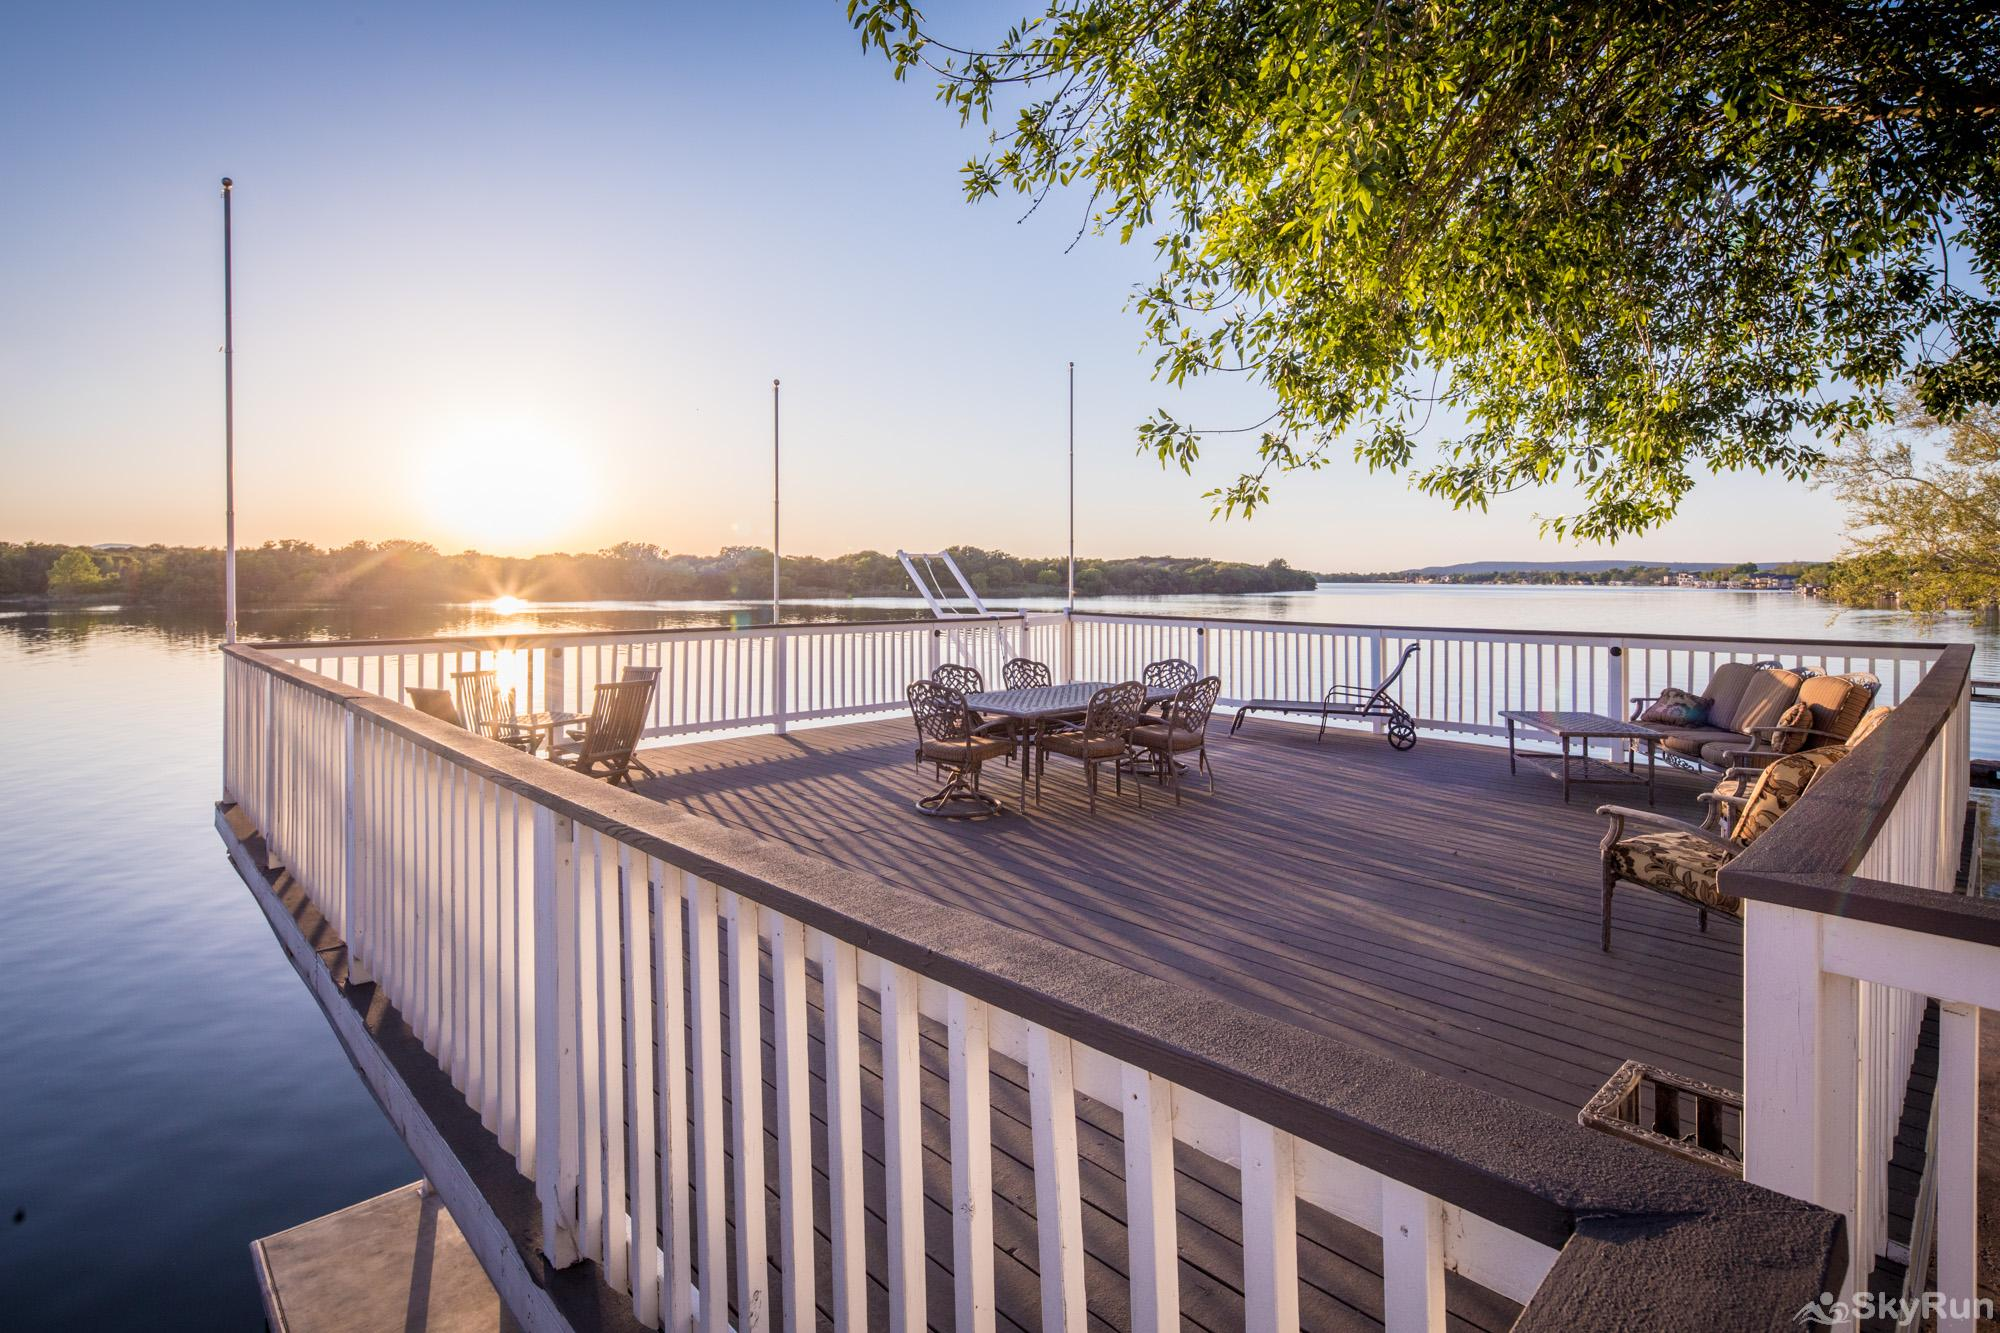 PARADISE POINTE Large Deck Space with Panoramic Views of the Water